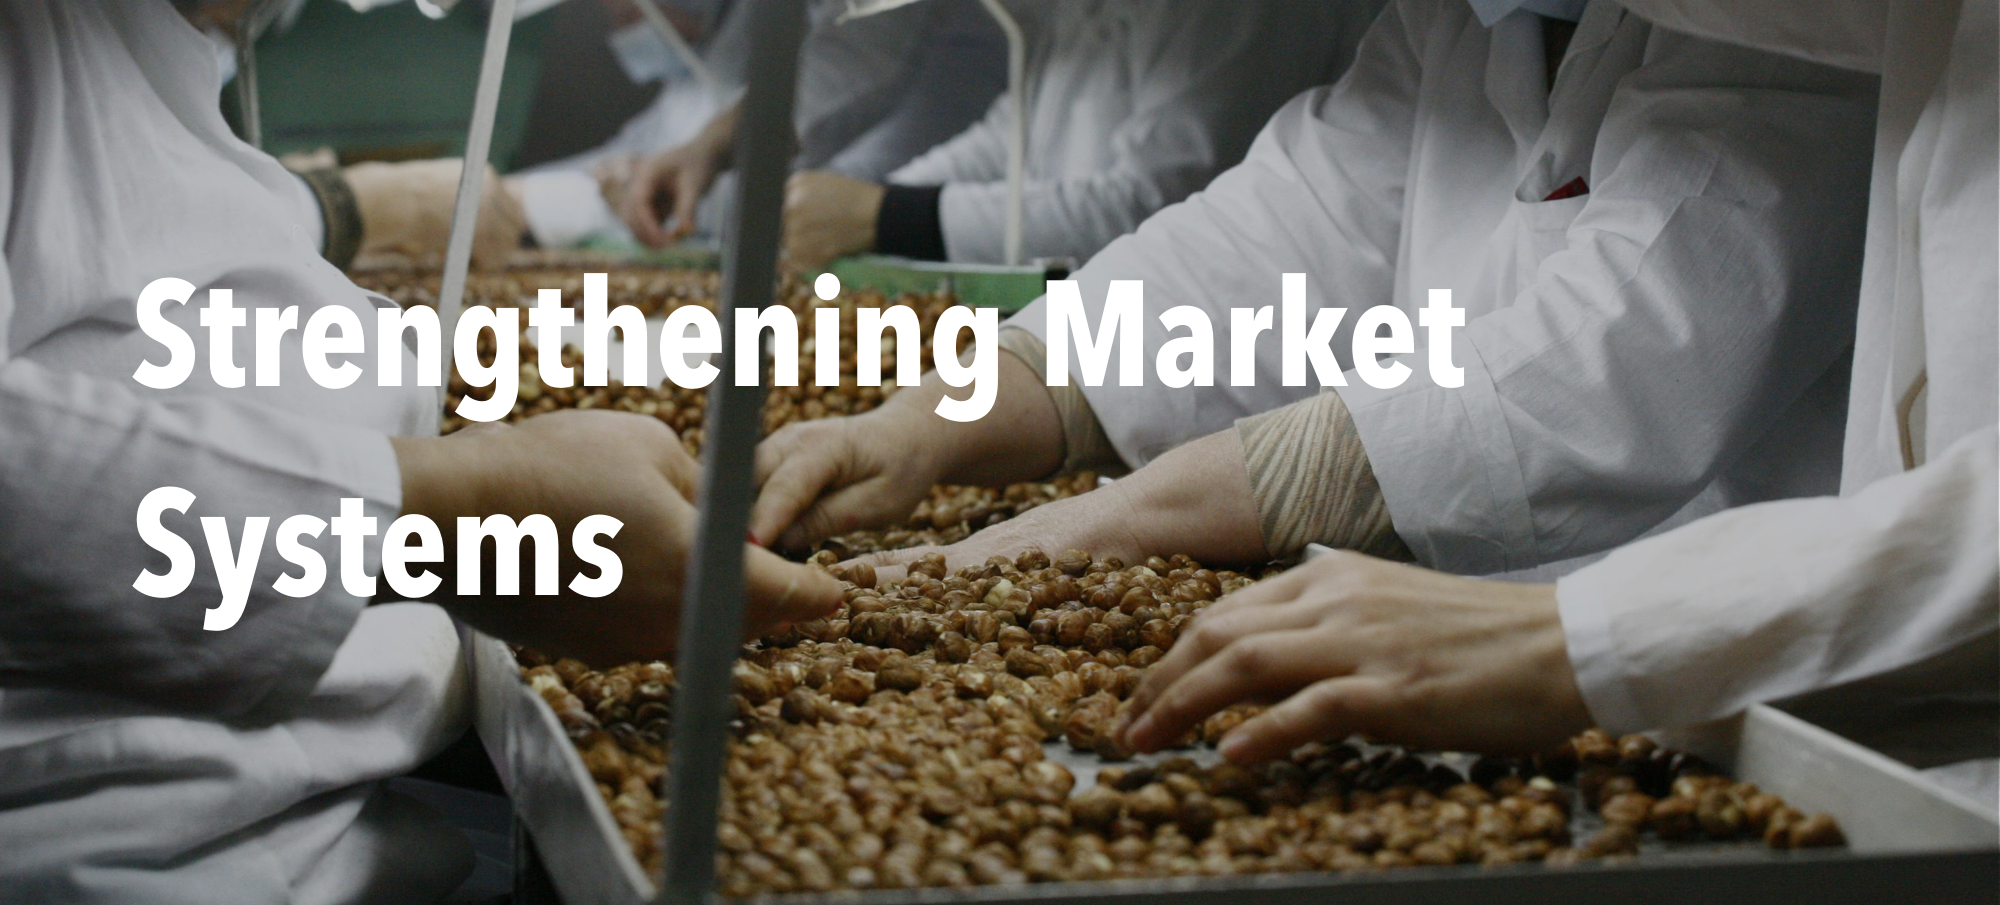 """Hazelnut processing facility with header text """"Strengthening Market Systems"""""""